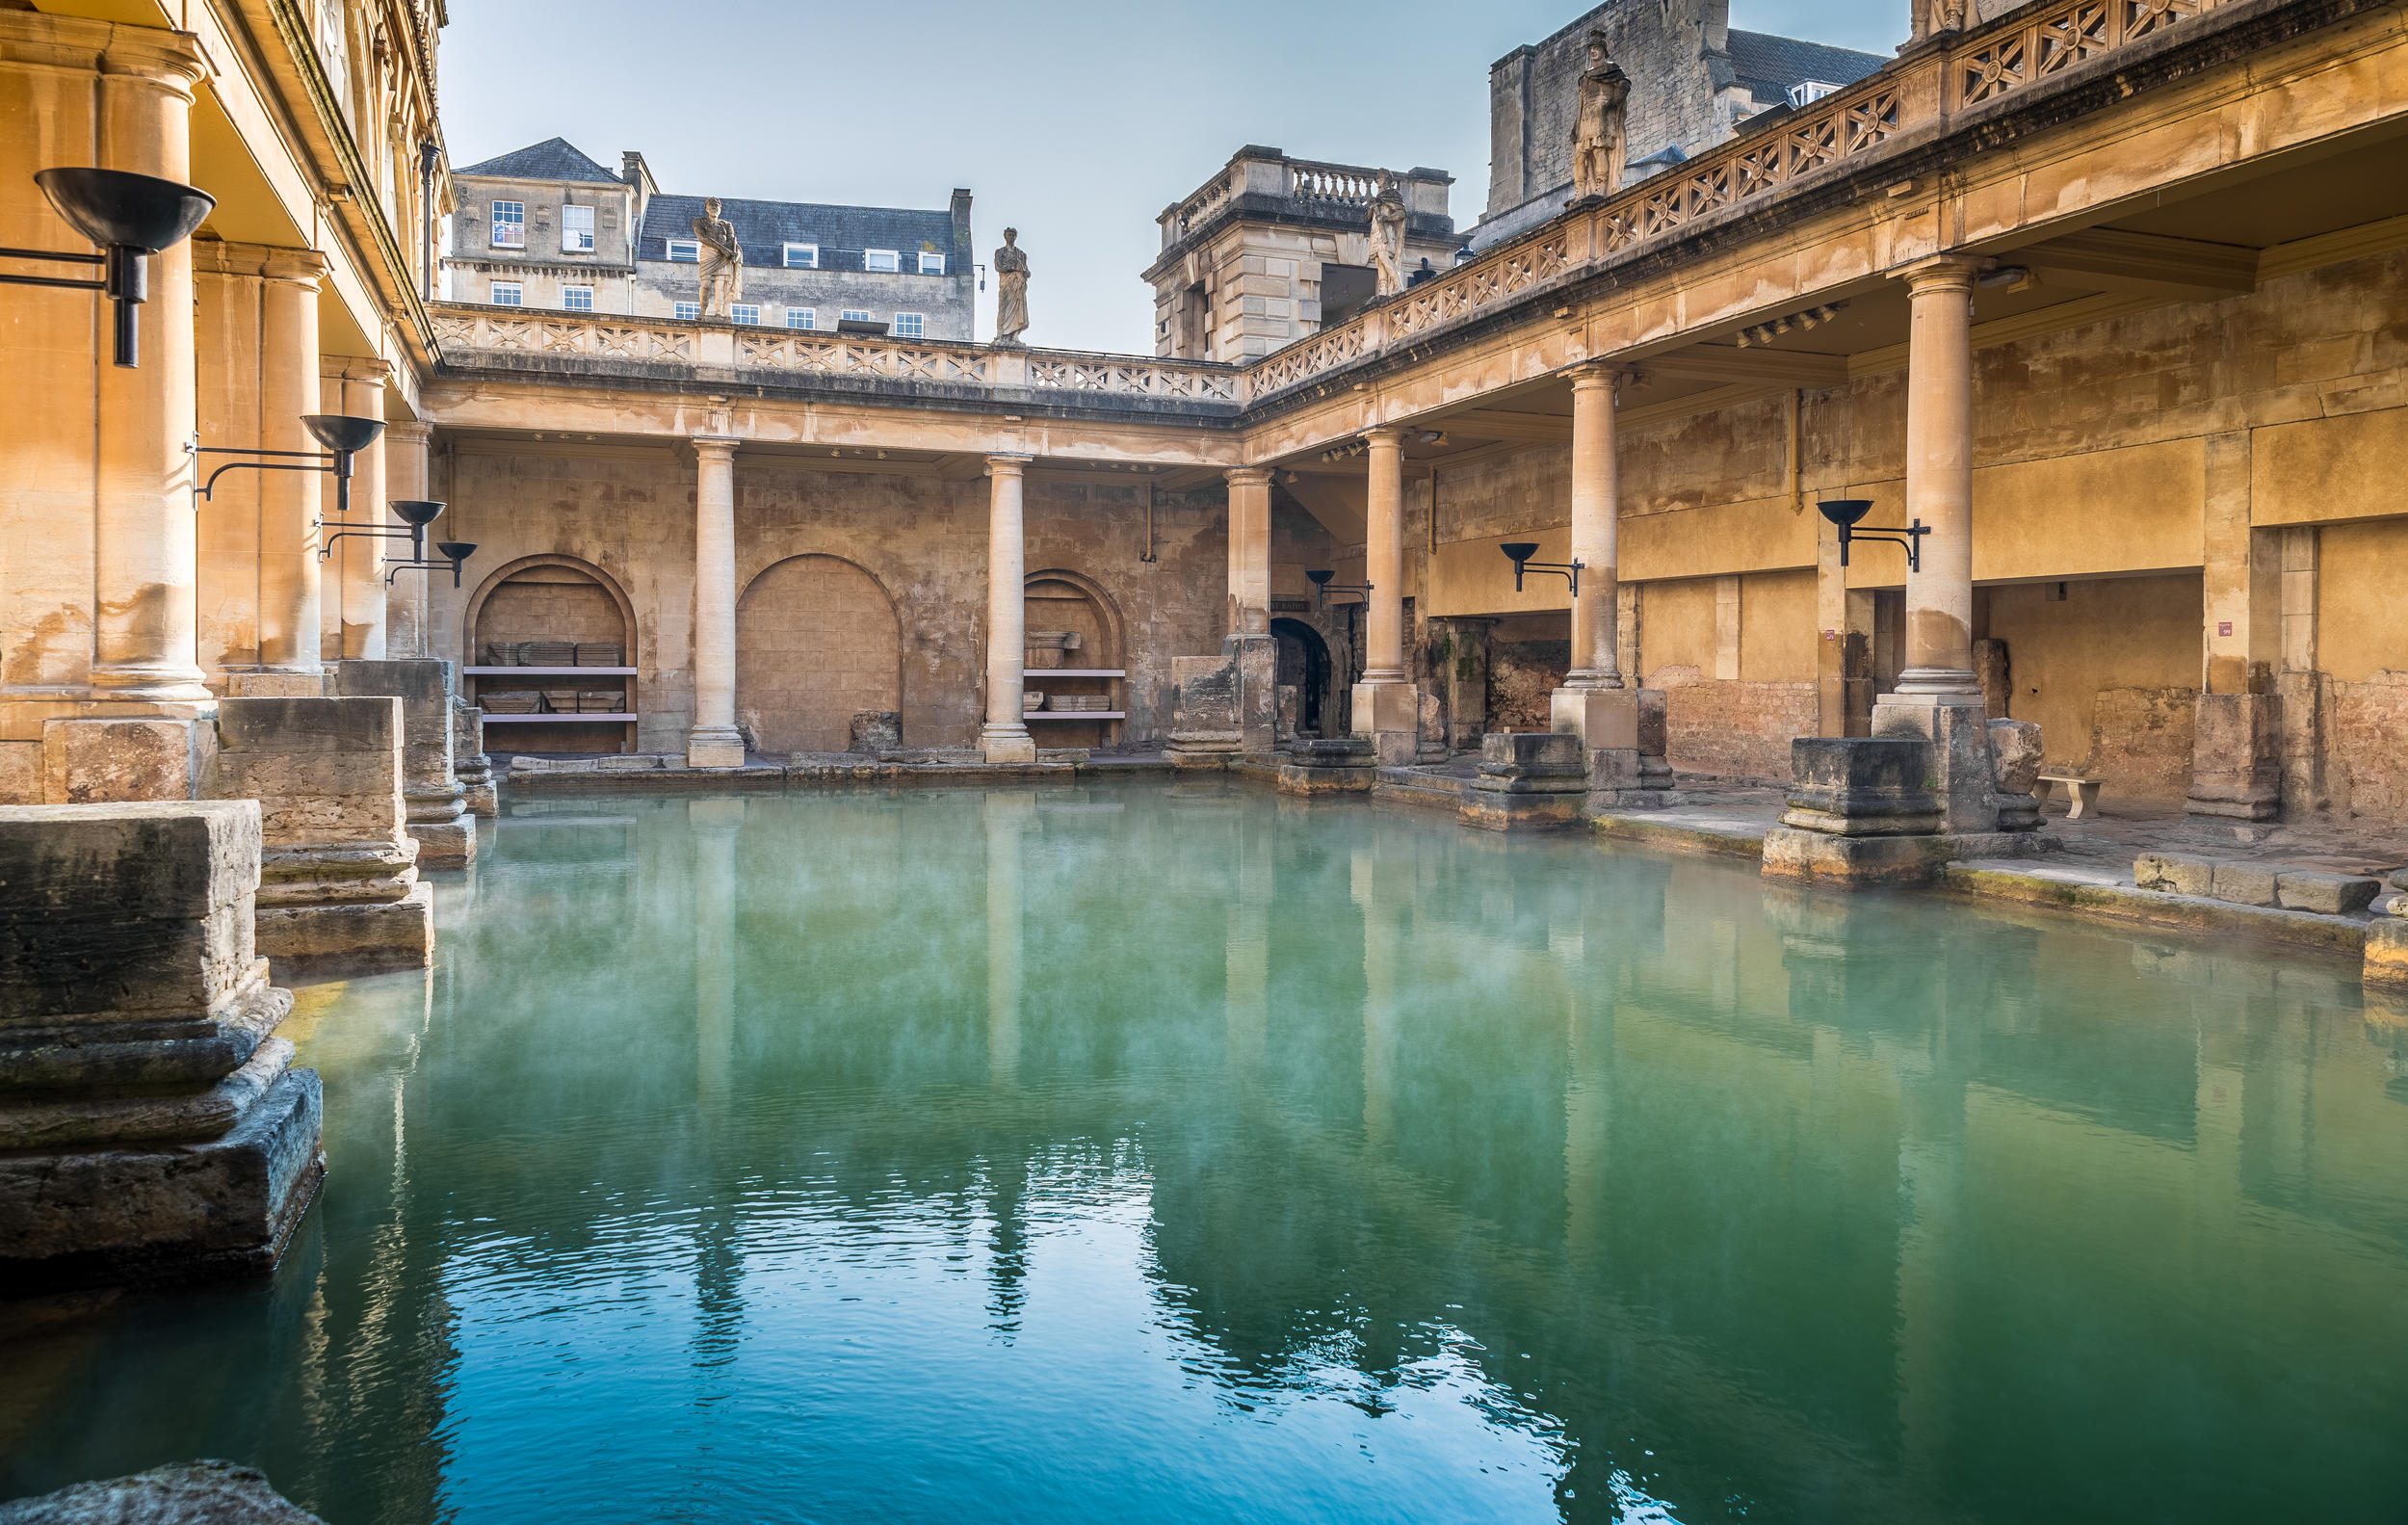 Http Www Romanbaths Co Uk Walkthroughs Great Bath